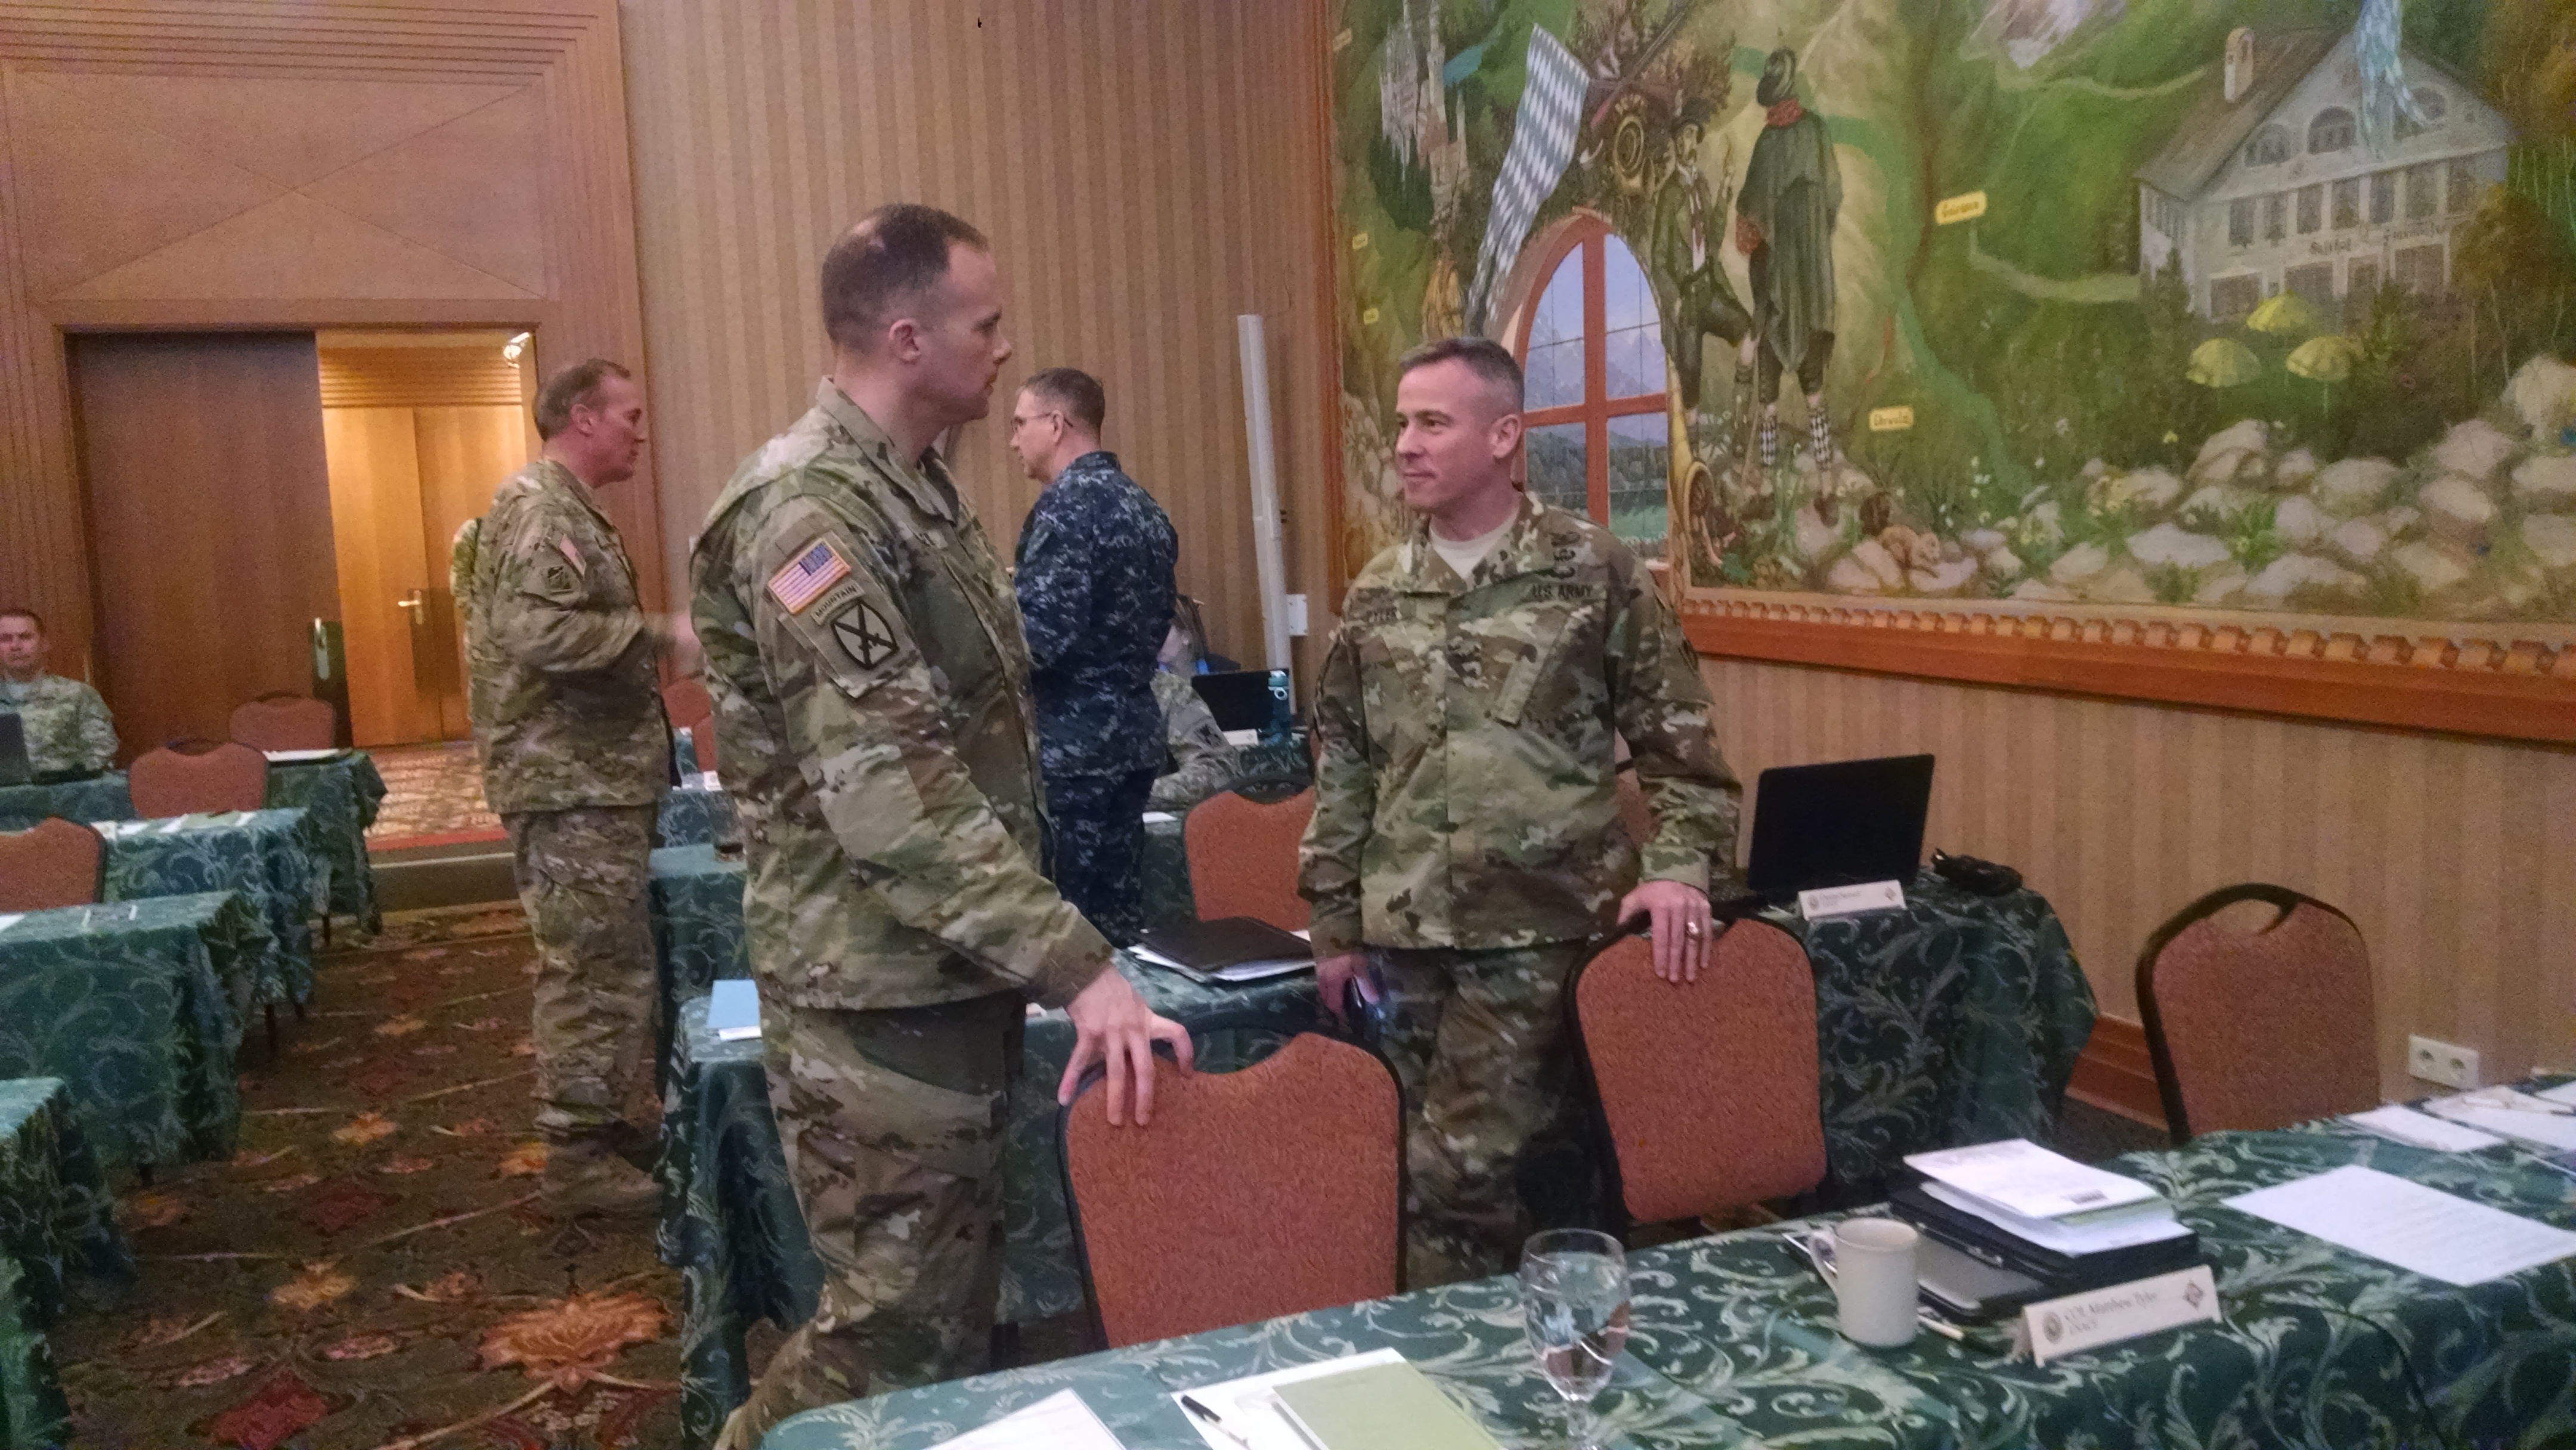 Col. Matthew Tyler, U.S. Army Corps of Engineers, Europe District commander discusses engineering planning during a breakout session.